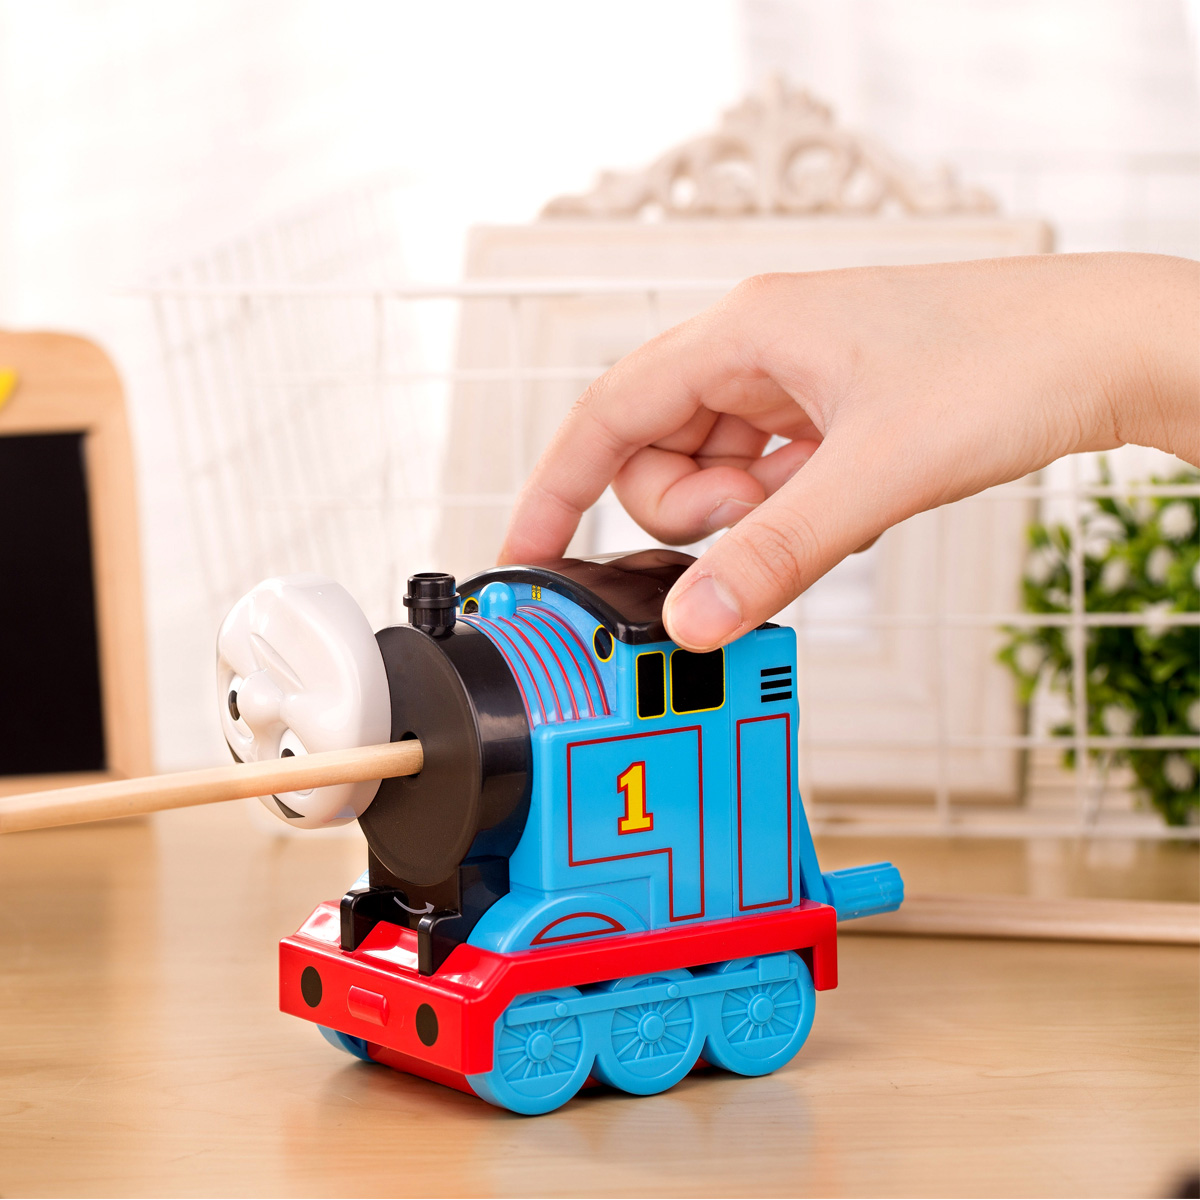 Deli train Pencil Sharpener Mechanical Pencil Sharpeners For Kids School-supplies School Stationary Cartoon Pencil Sharpener deli stationery pencil sharpener mechanical cartoon kawaii pencil sharpener cute pencil sharpener office & school supplies